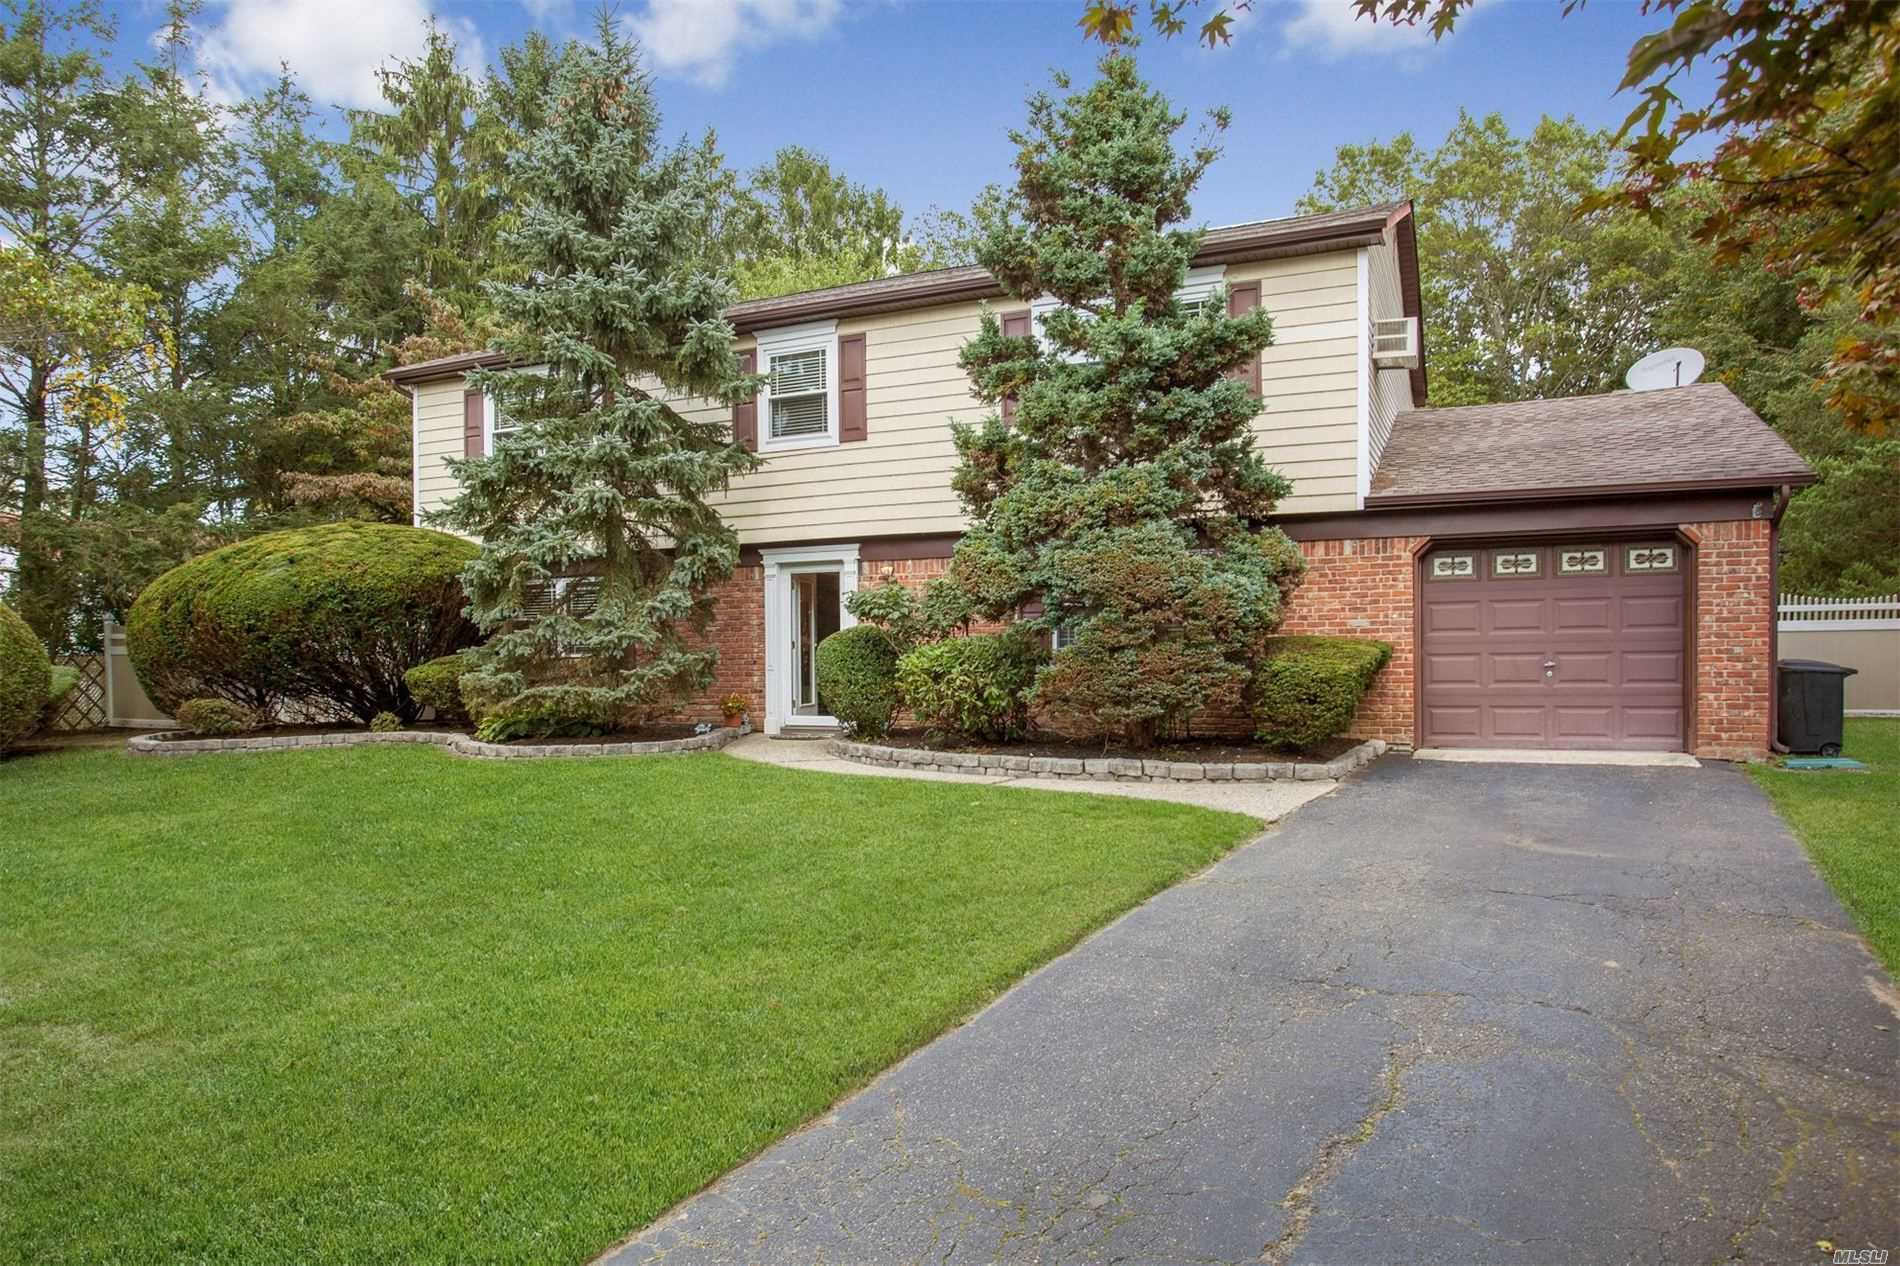 67 Long Meadow Pl - S. Setauket, New York